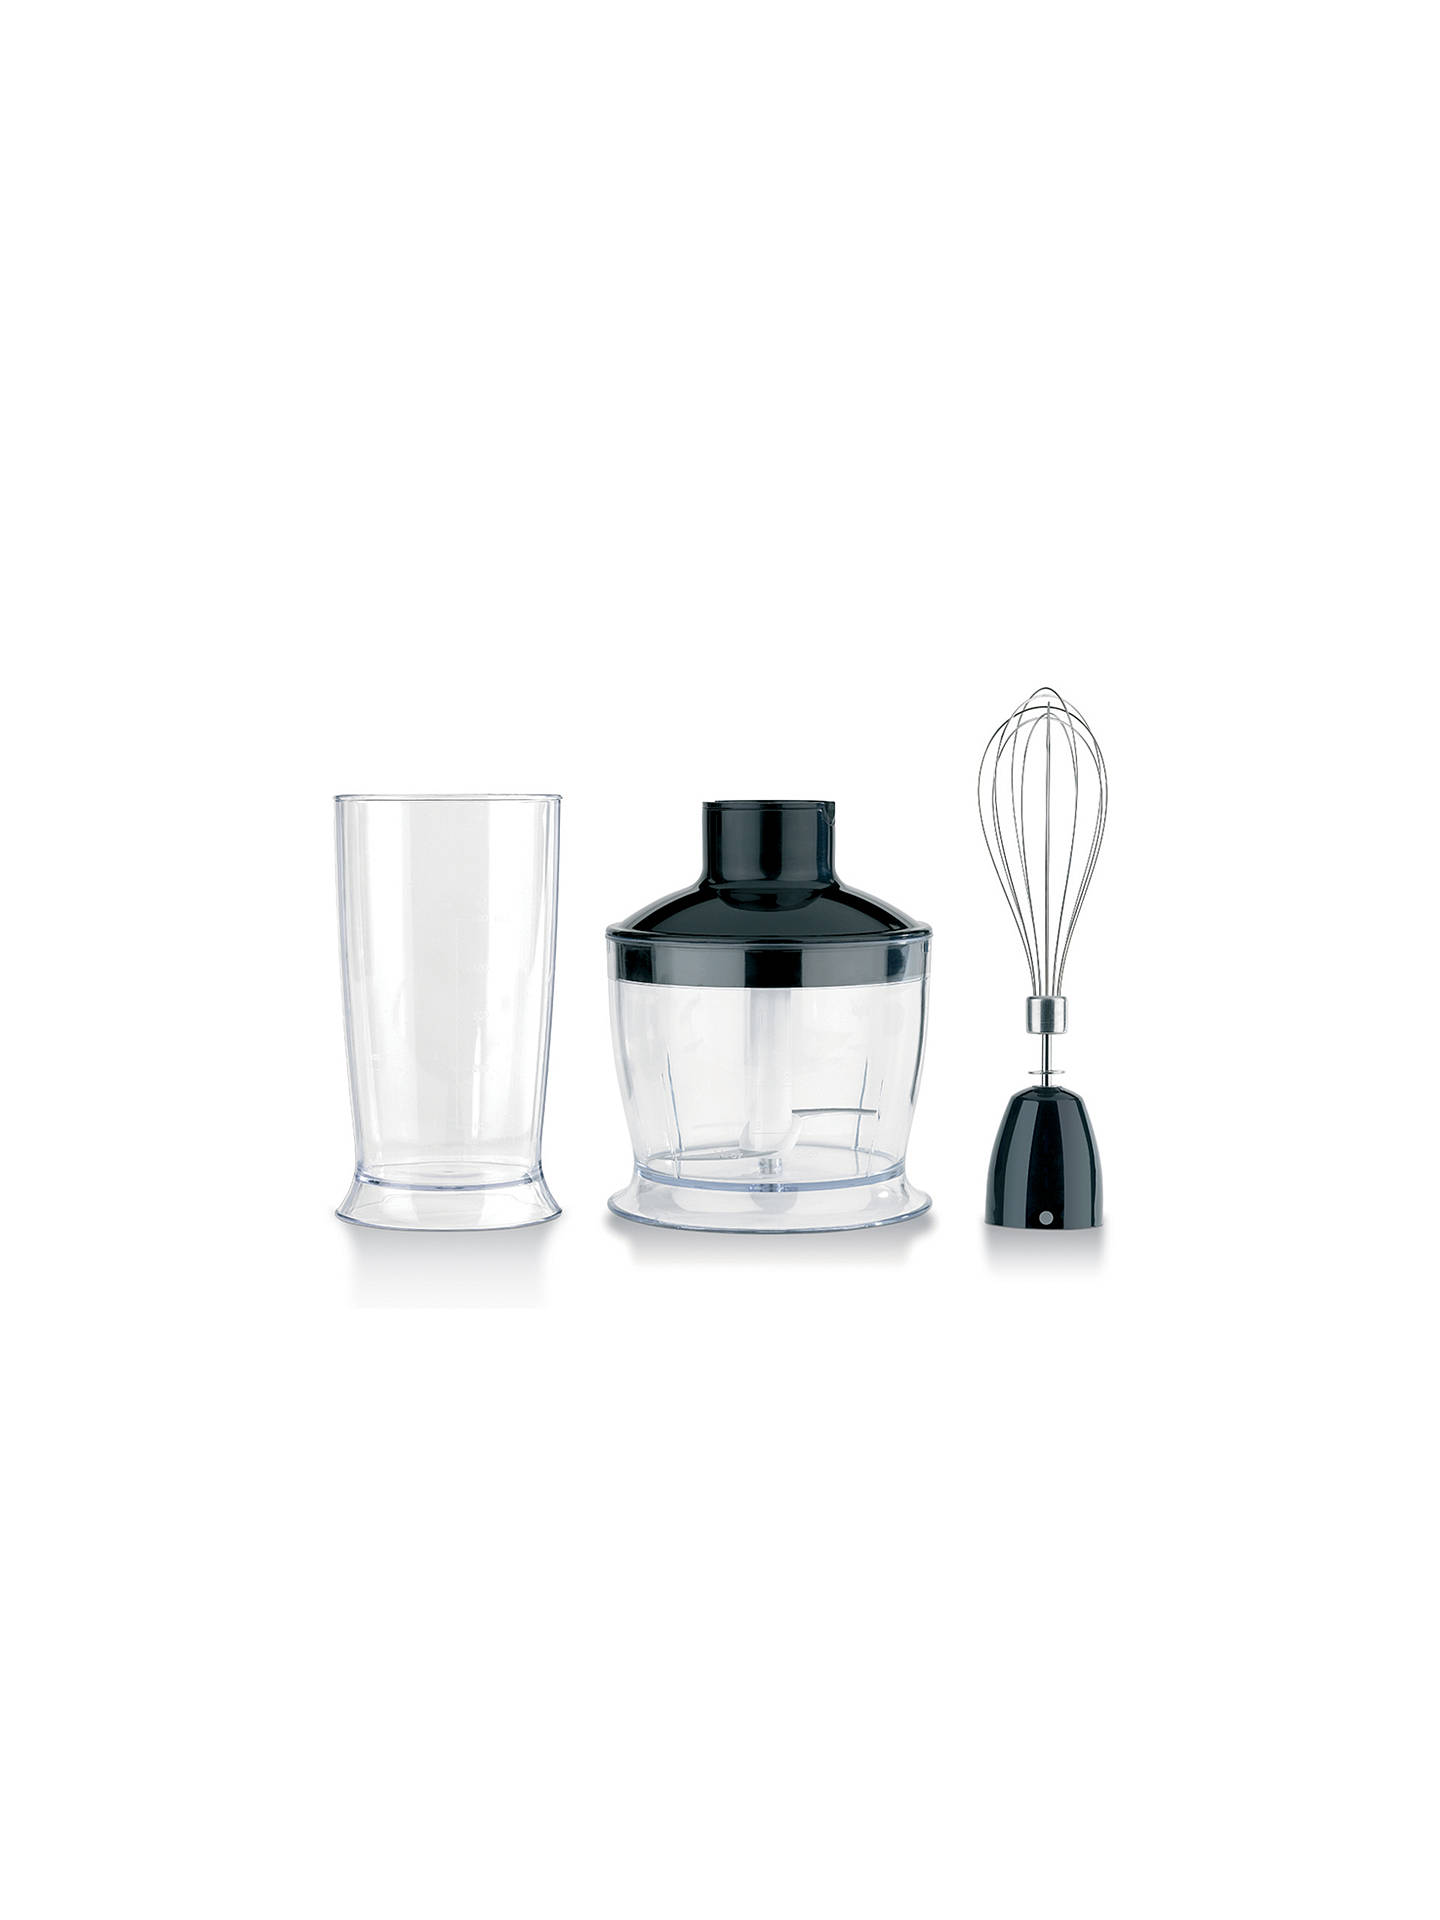 Breville VHB060 4 in 1 Hand Blender